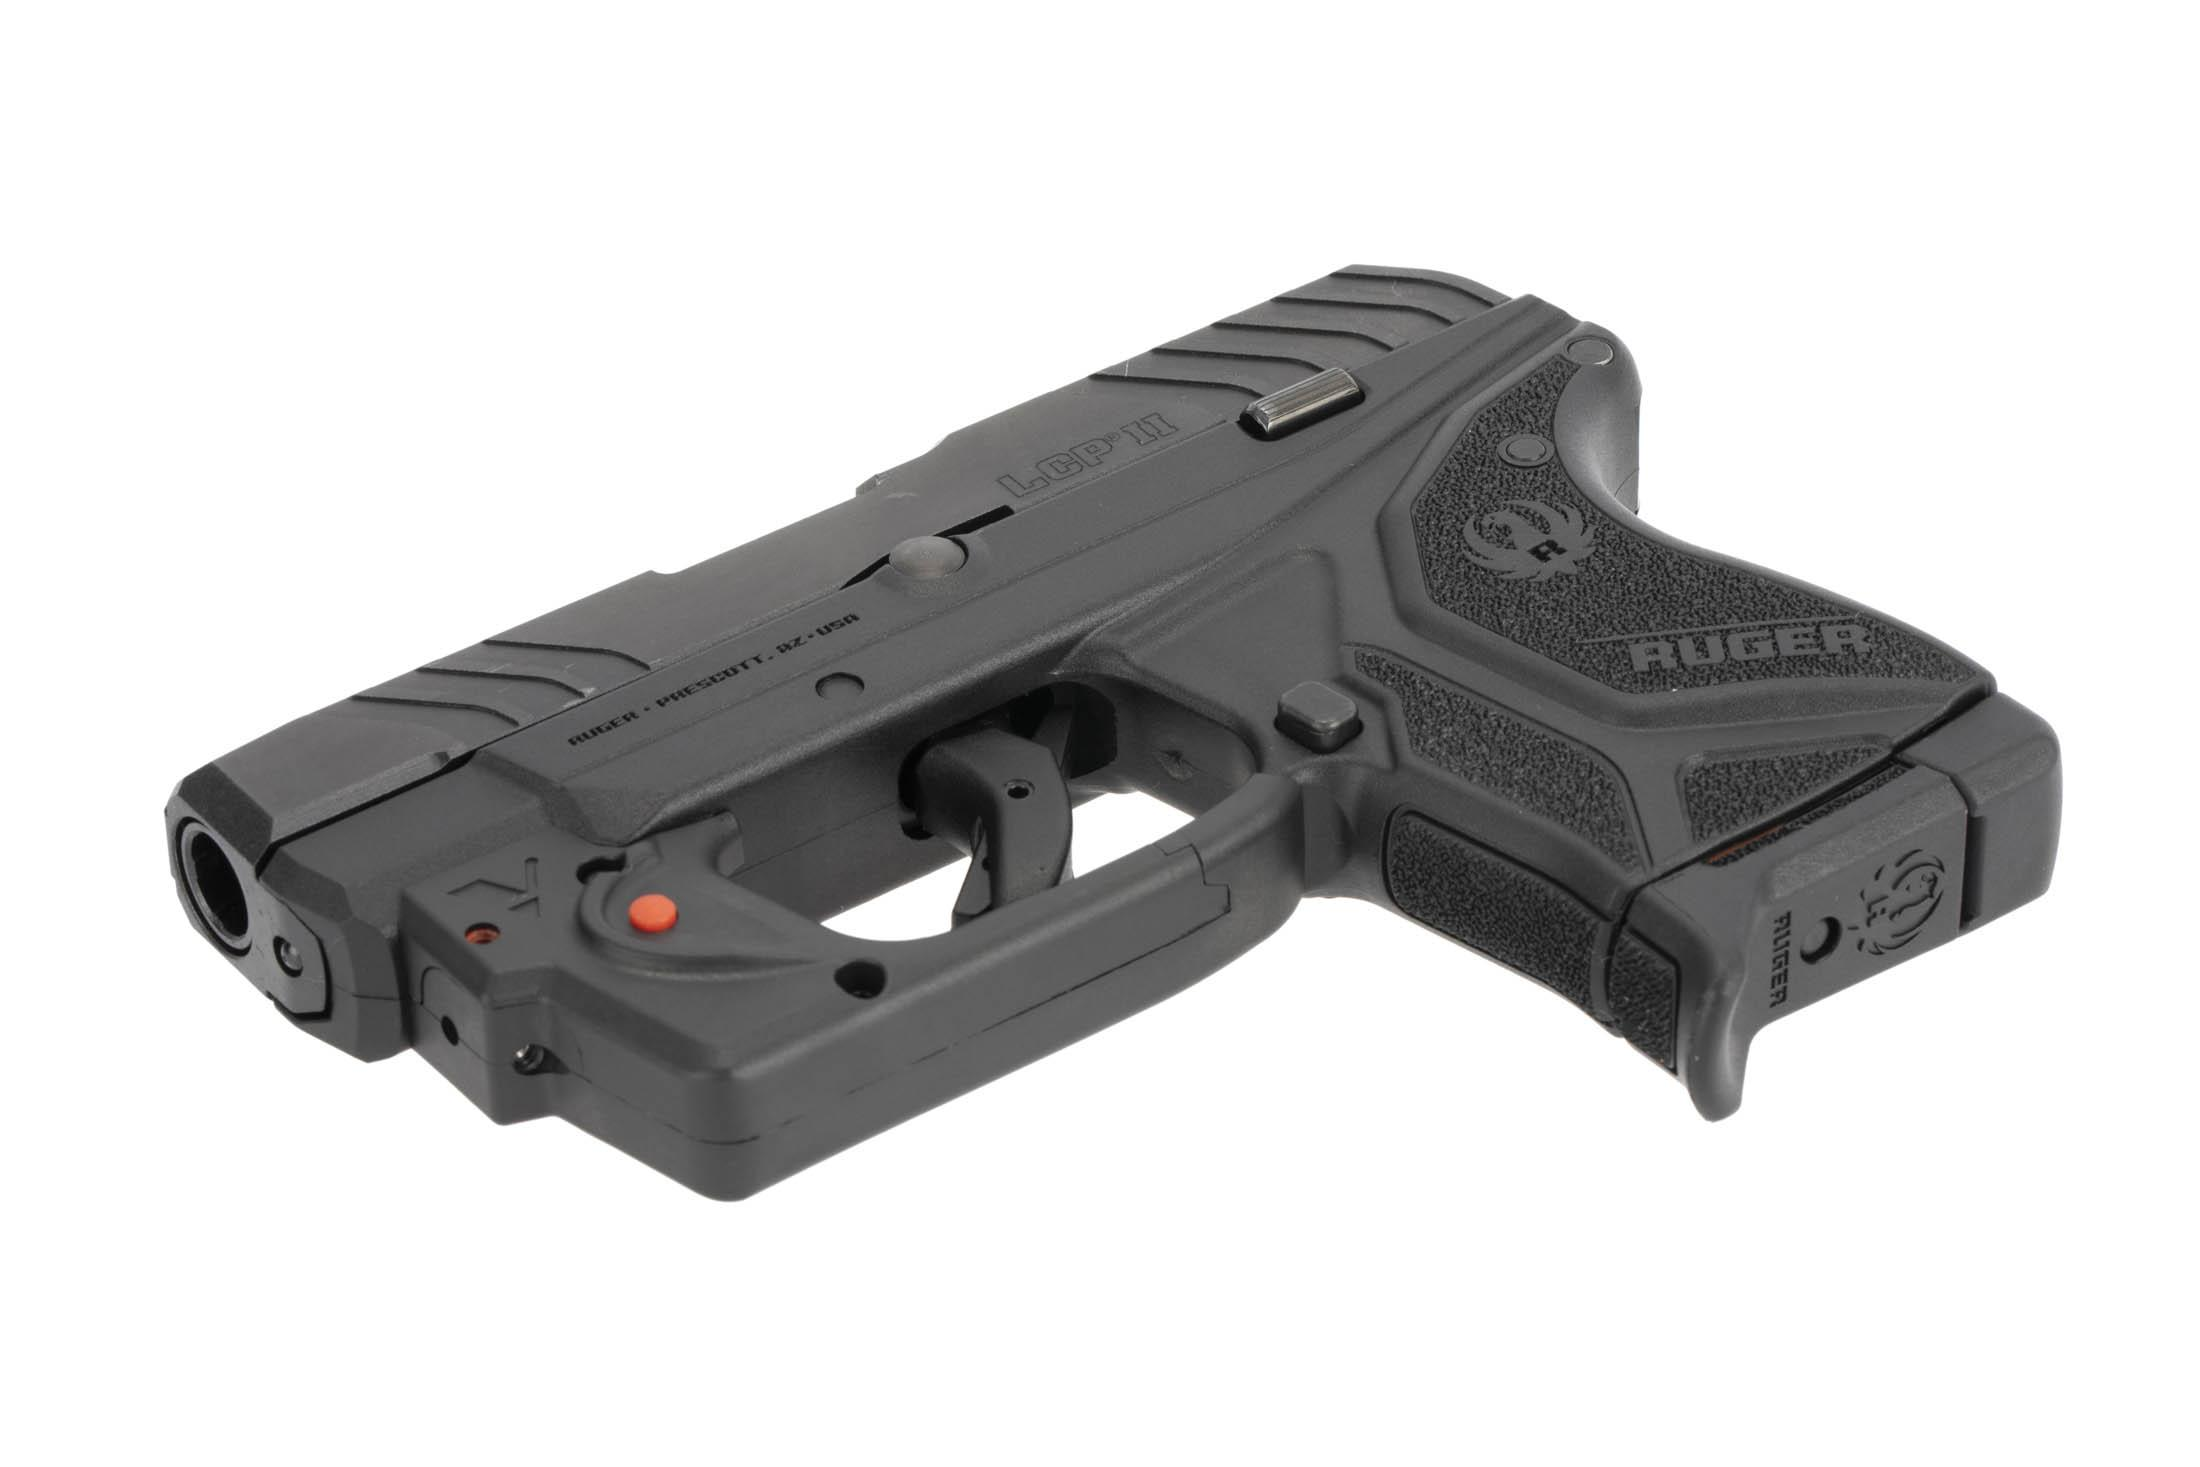 The Ruger LCP II has an integrated laser system in the trigger guard